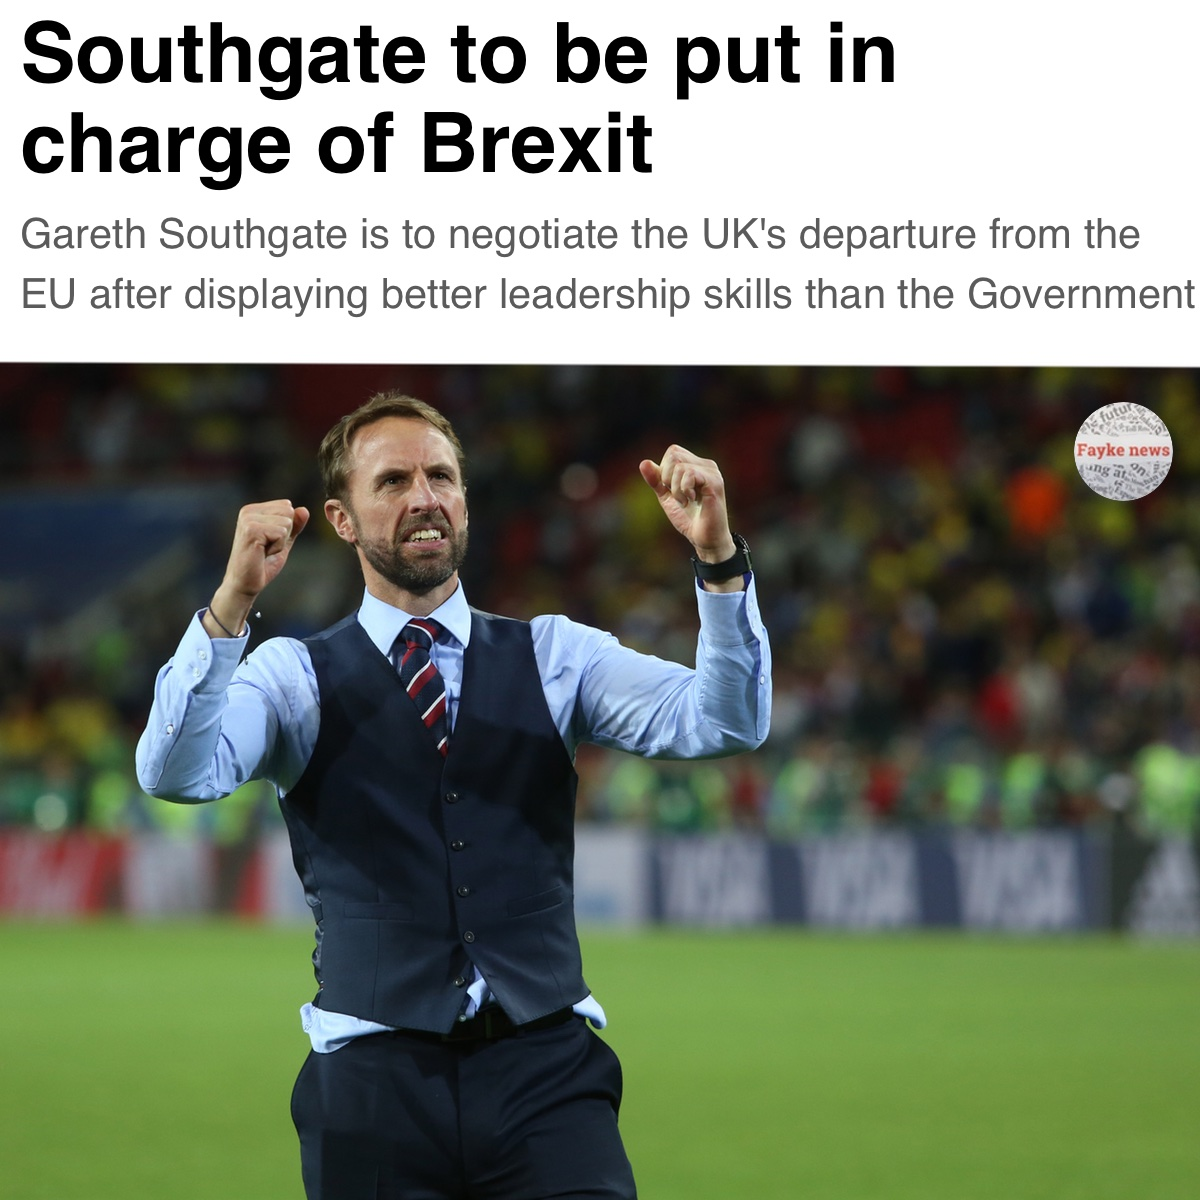 Southgate In Charge Of Brexit Fayke News